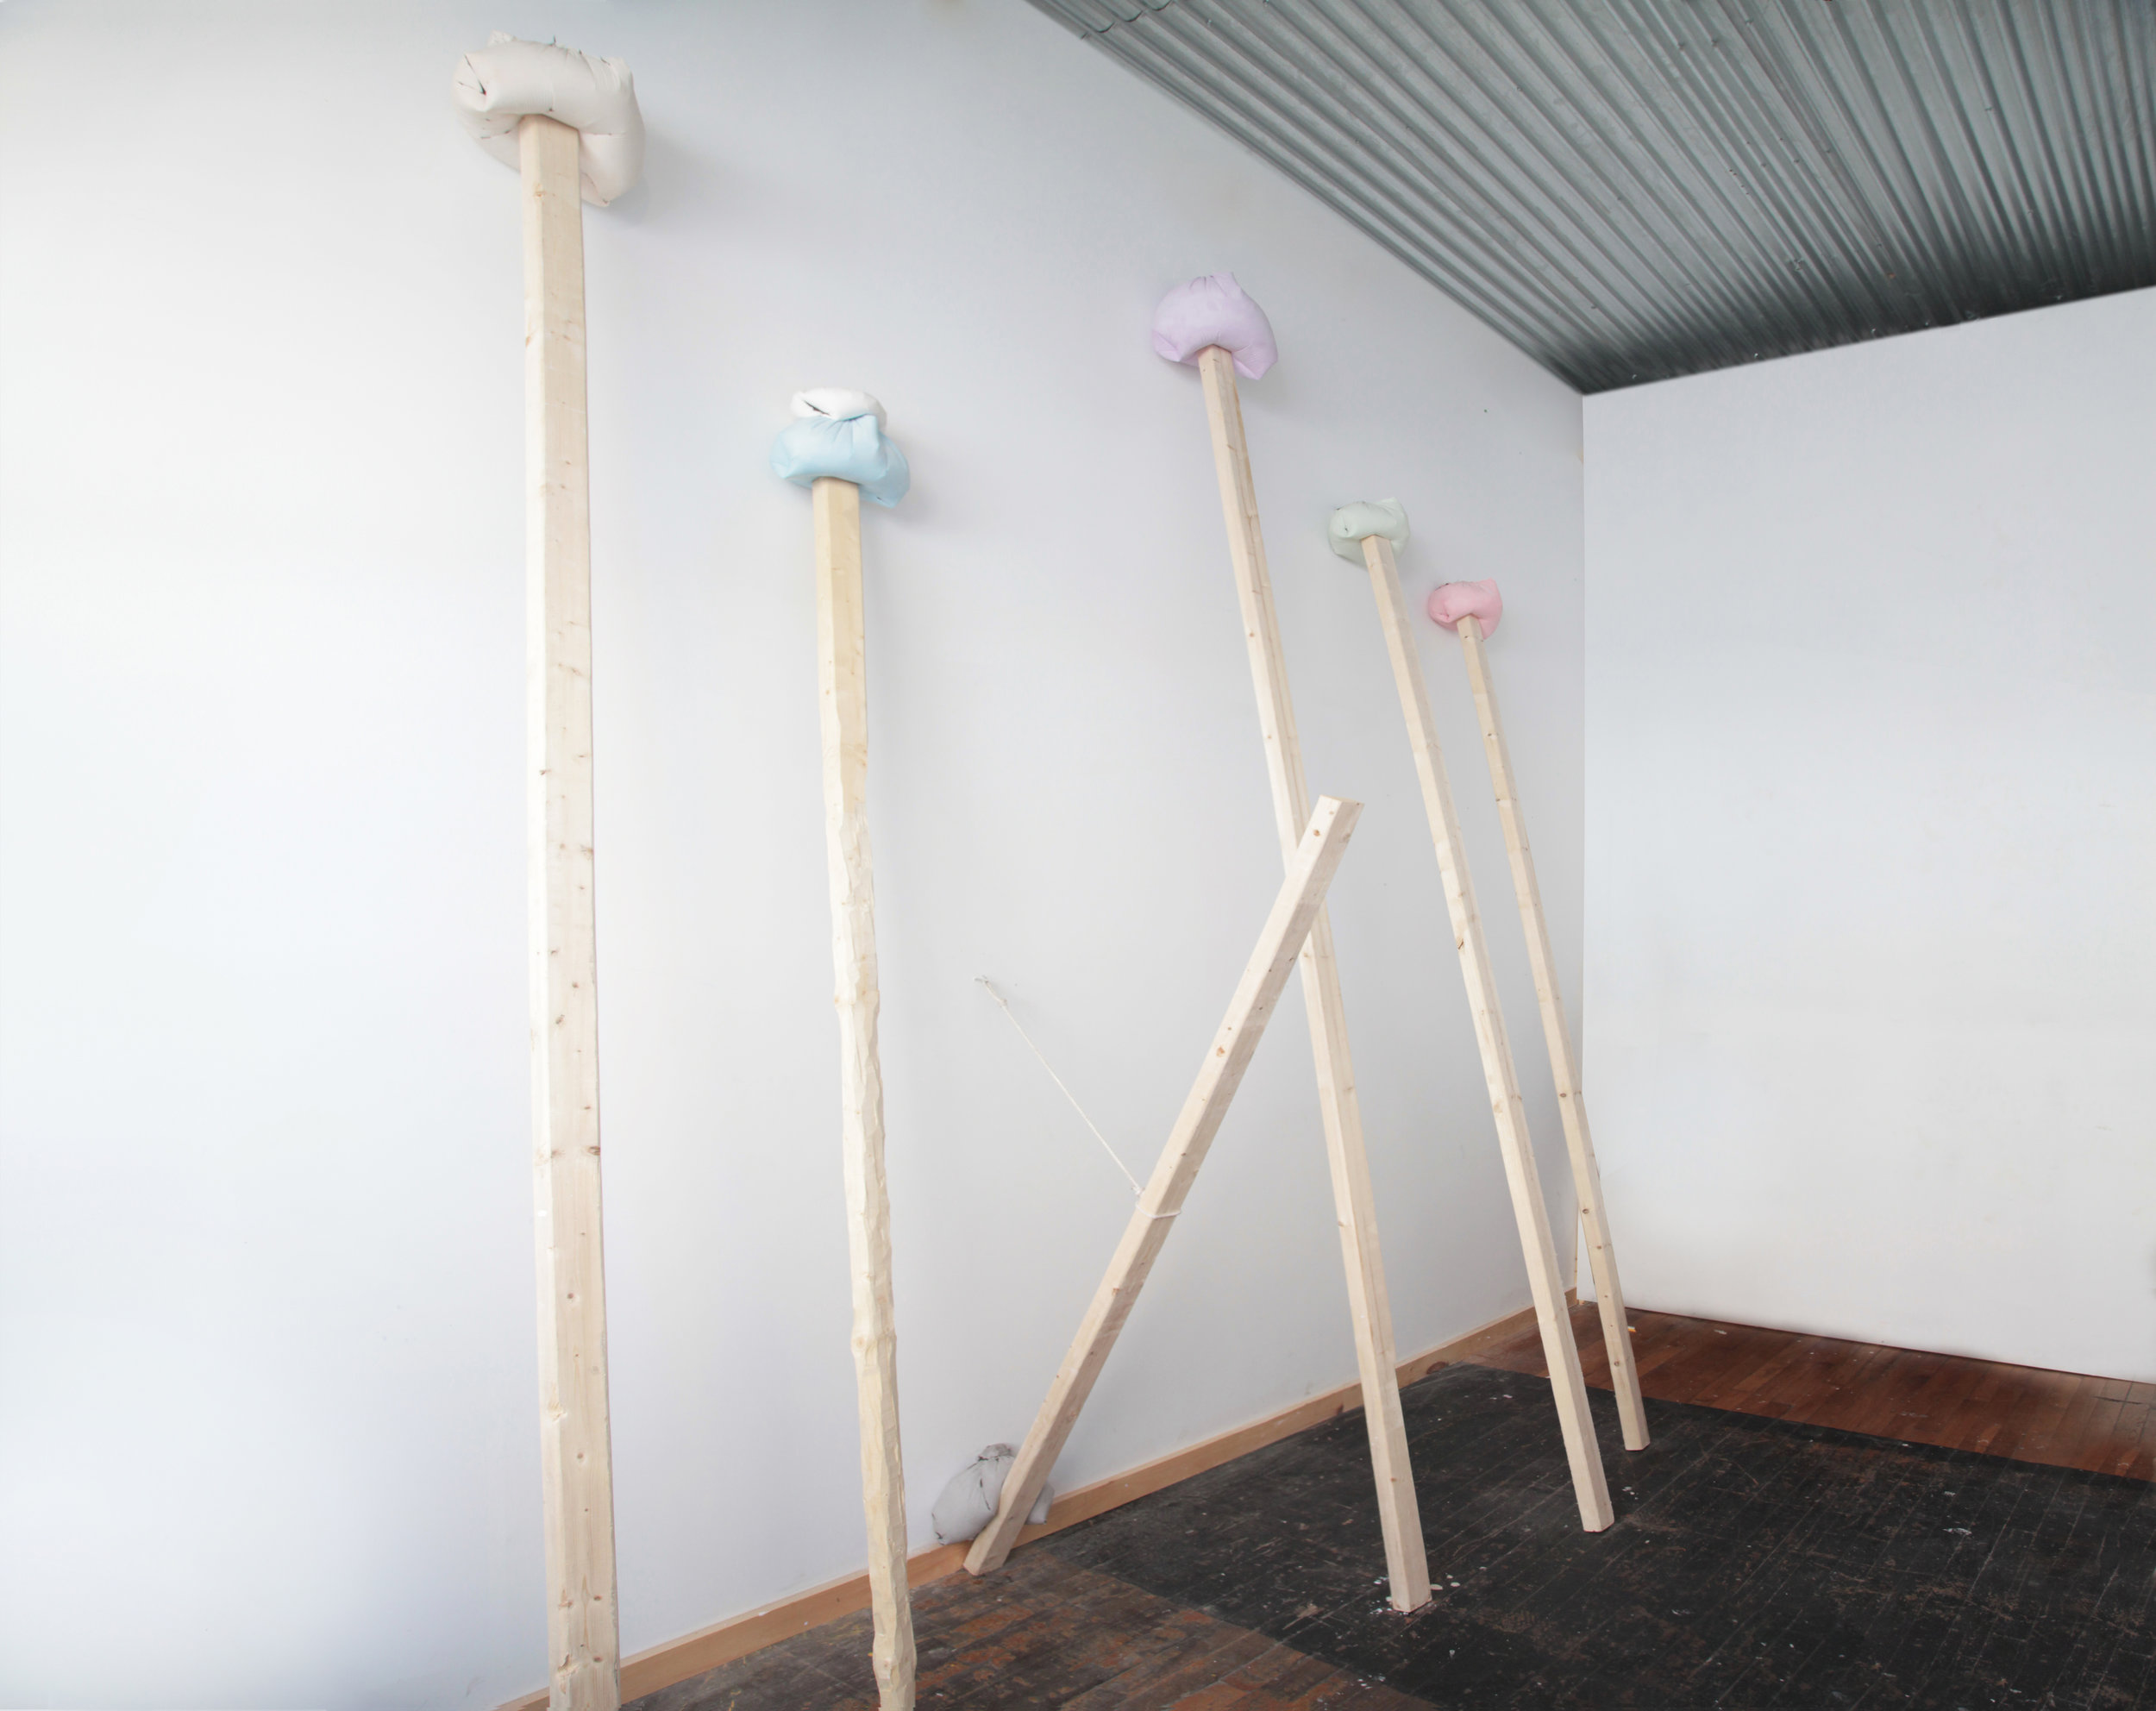 Untitled (detail), 2014 plaster, pigment, wood 31 x 96 x 144 in